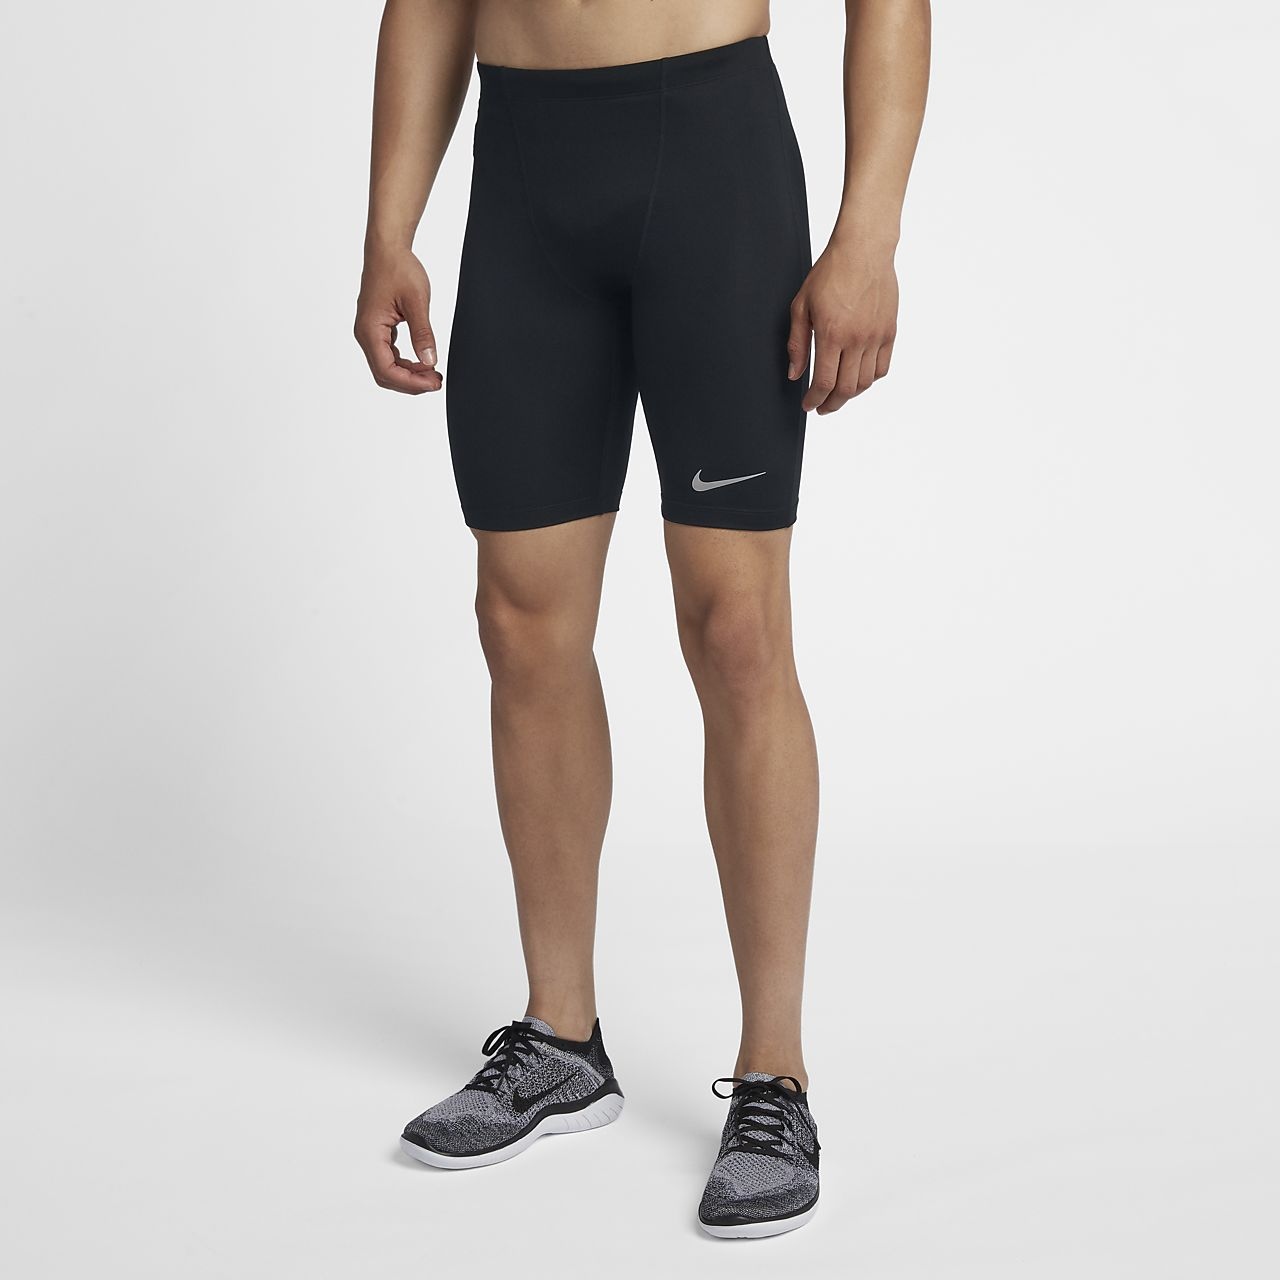 ddb45b5206696 Nike Men's 1/2-Length Running Tights. Nike.com DK